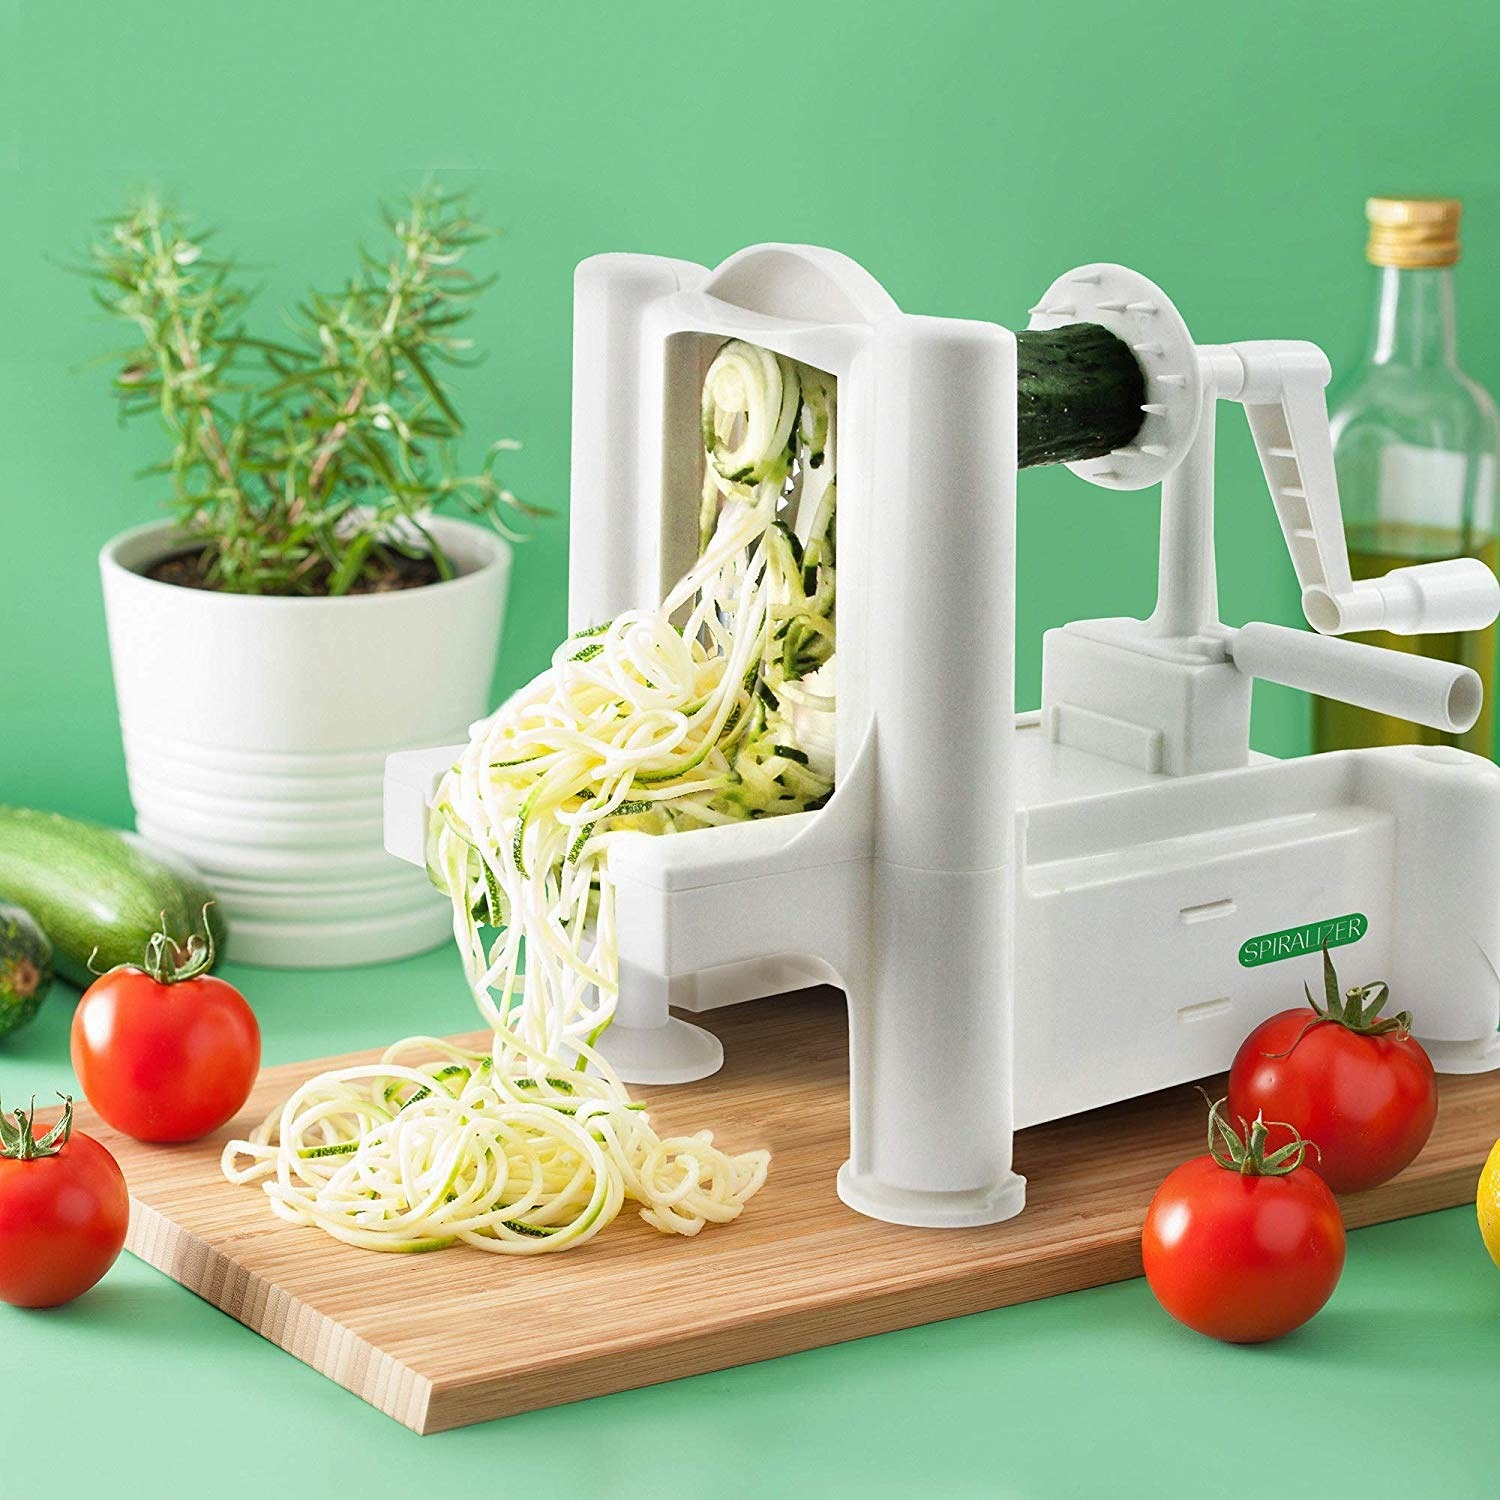 the spiralizer making zoodles